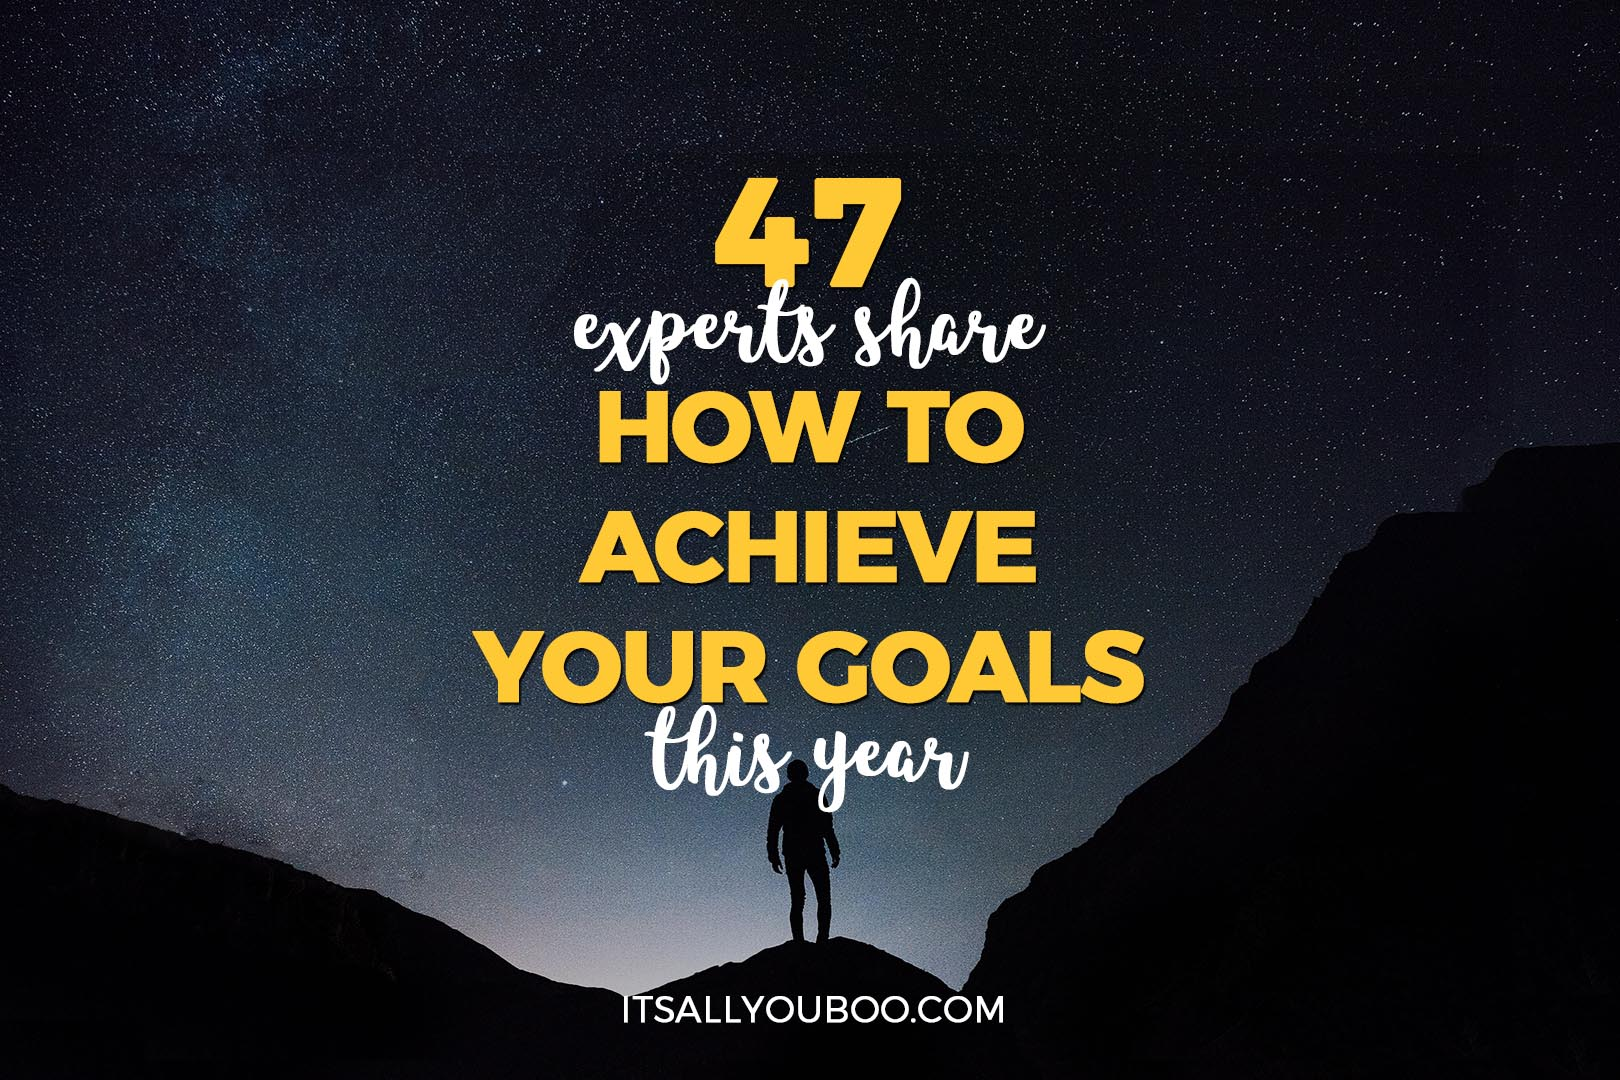 how to achieve your goals How you can get motivated to reach your goals  you can take simple steps to stay enthusiastic and committed every step of the way until you achieve.